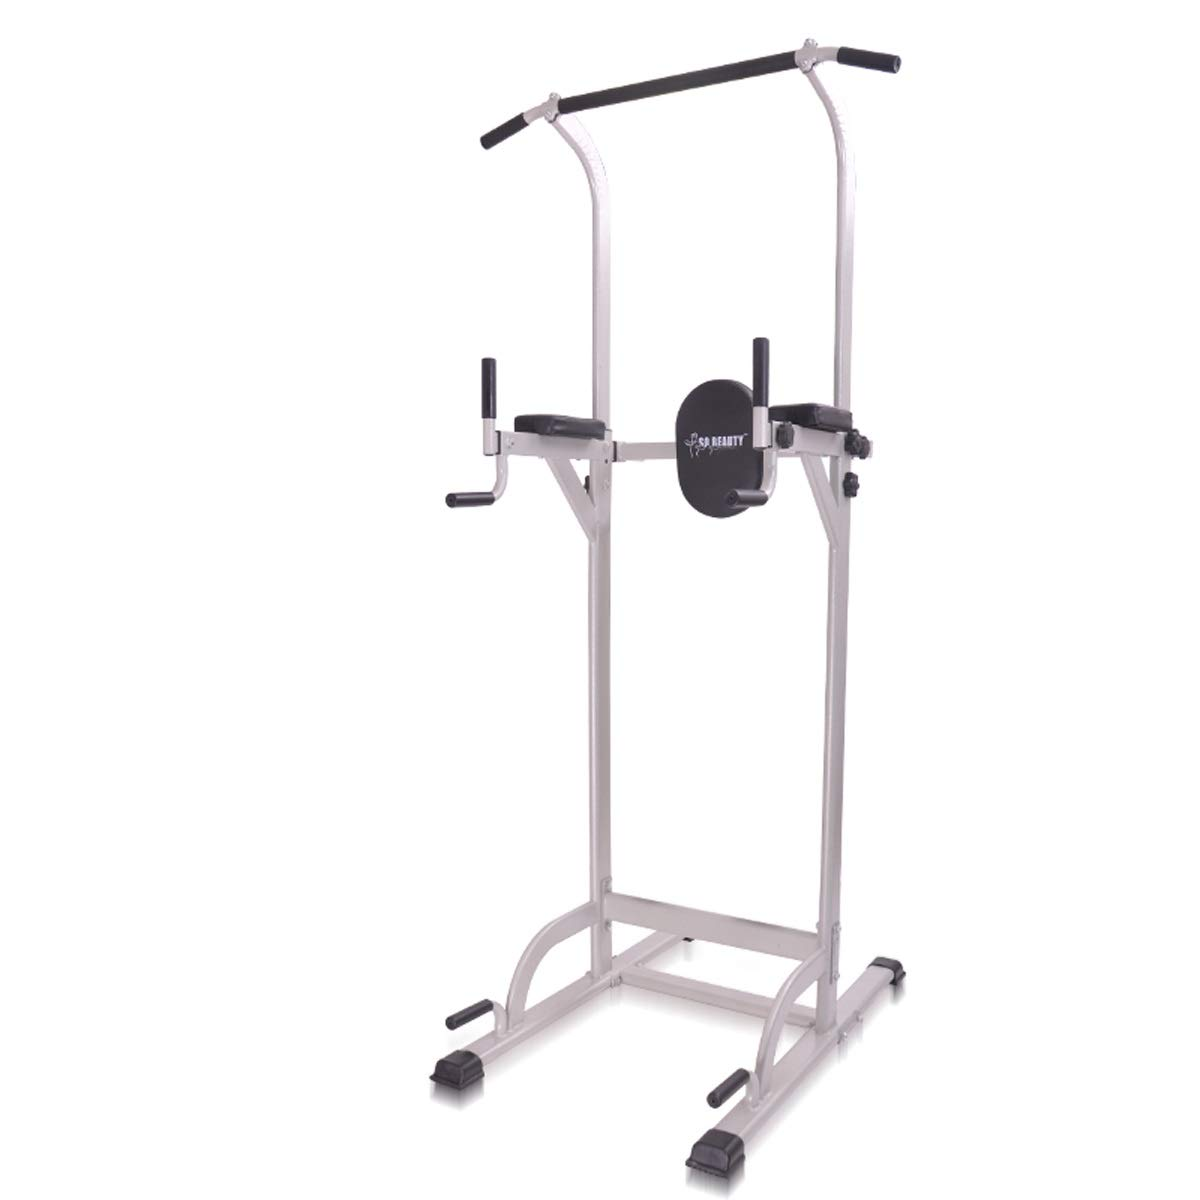 Household Horizontal Bar Pull-up Device Multi-Function Indoor Single Parallel Bars Fitness Equipment Walking Machine Sports Equipment by Baianju